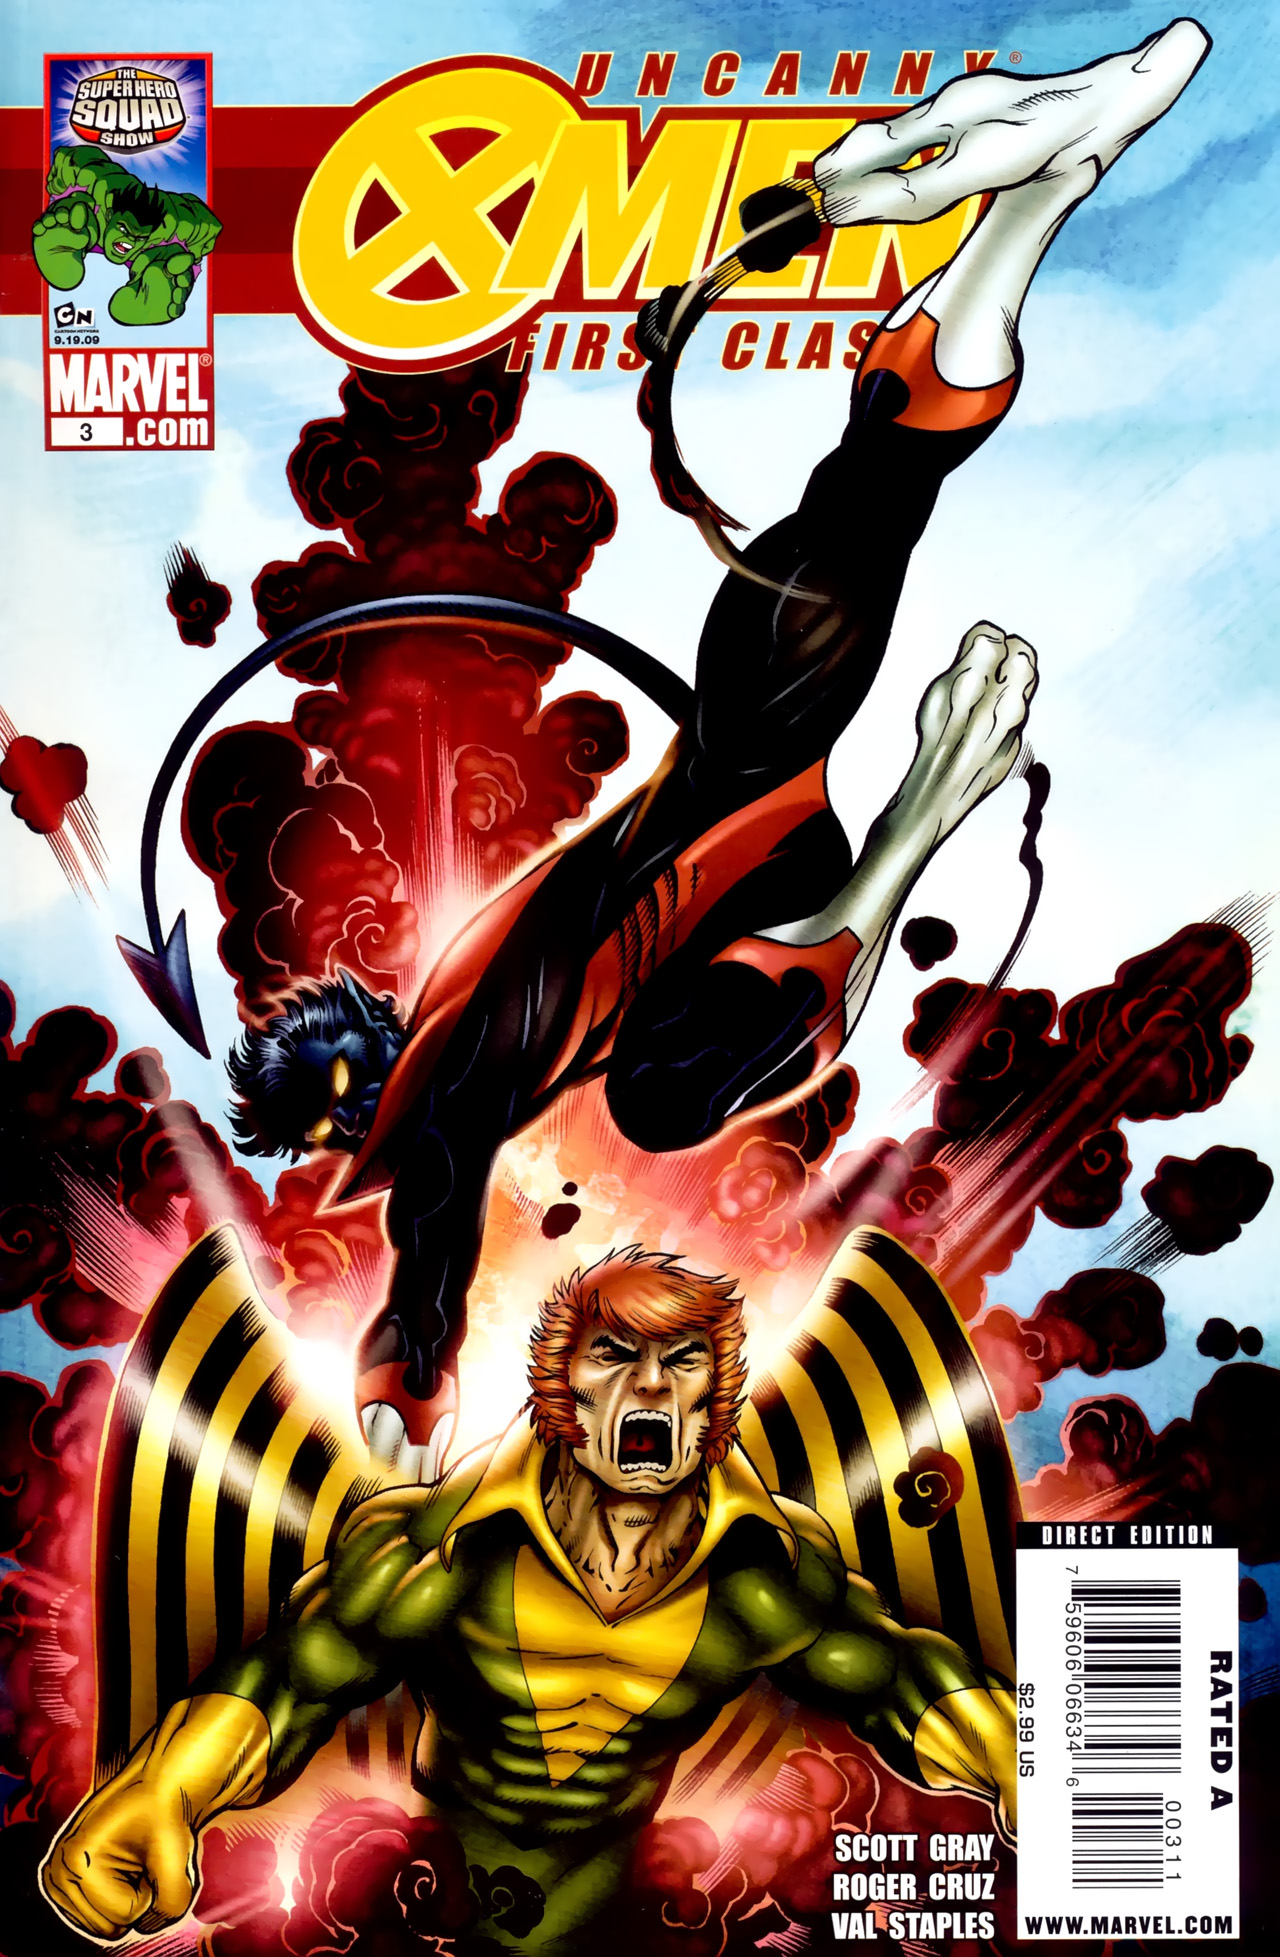 Read online Uncanny X-Men: First Class comic -  Issue #3 - 1